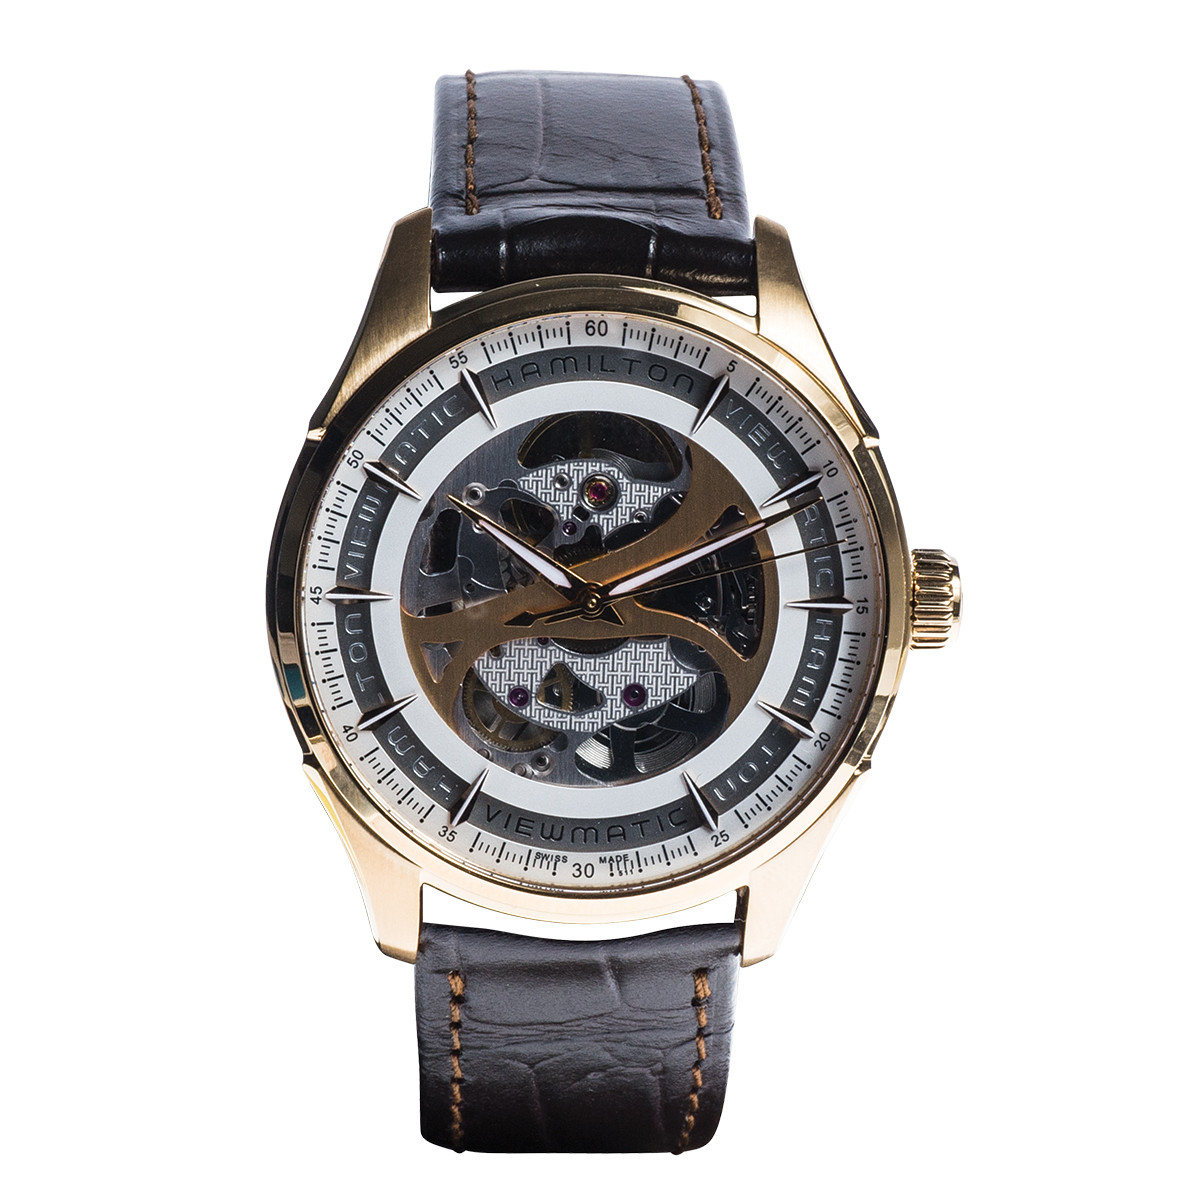 New Hamilton Jazzmaster Viewmatic Skeleton Watch